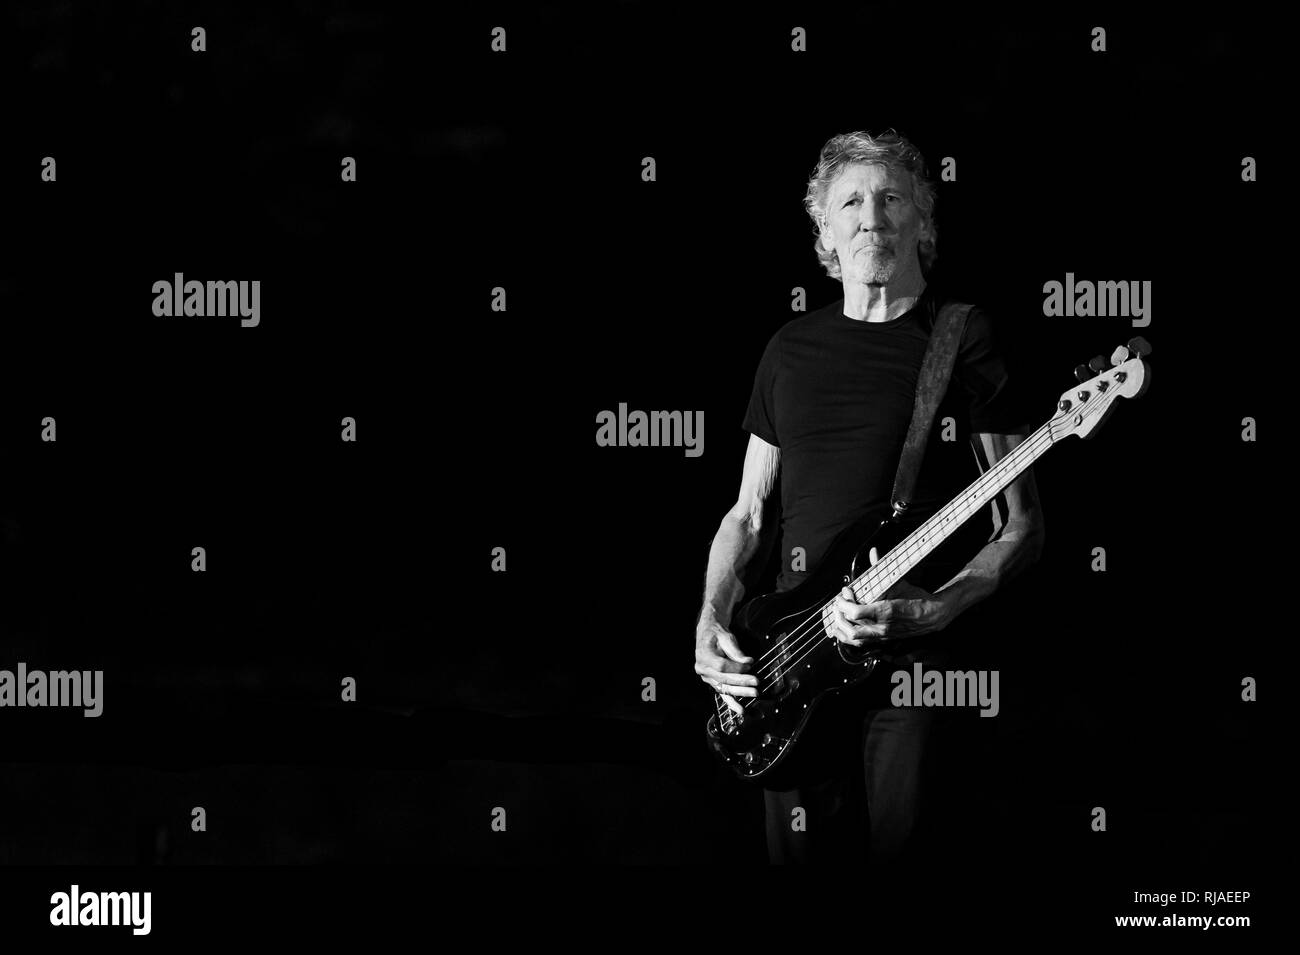 """Lucca, Italy. 11th july, 2018. Italy, Lucca: singer Roger Waters (Pink Floyd) performs live on stage at Lucca Summer Festival 2018  for """"Us + Them"""" tour 2018 - Stock Image"""